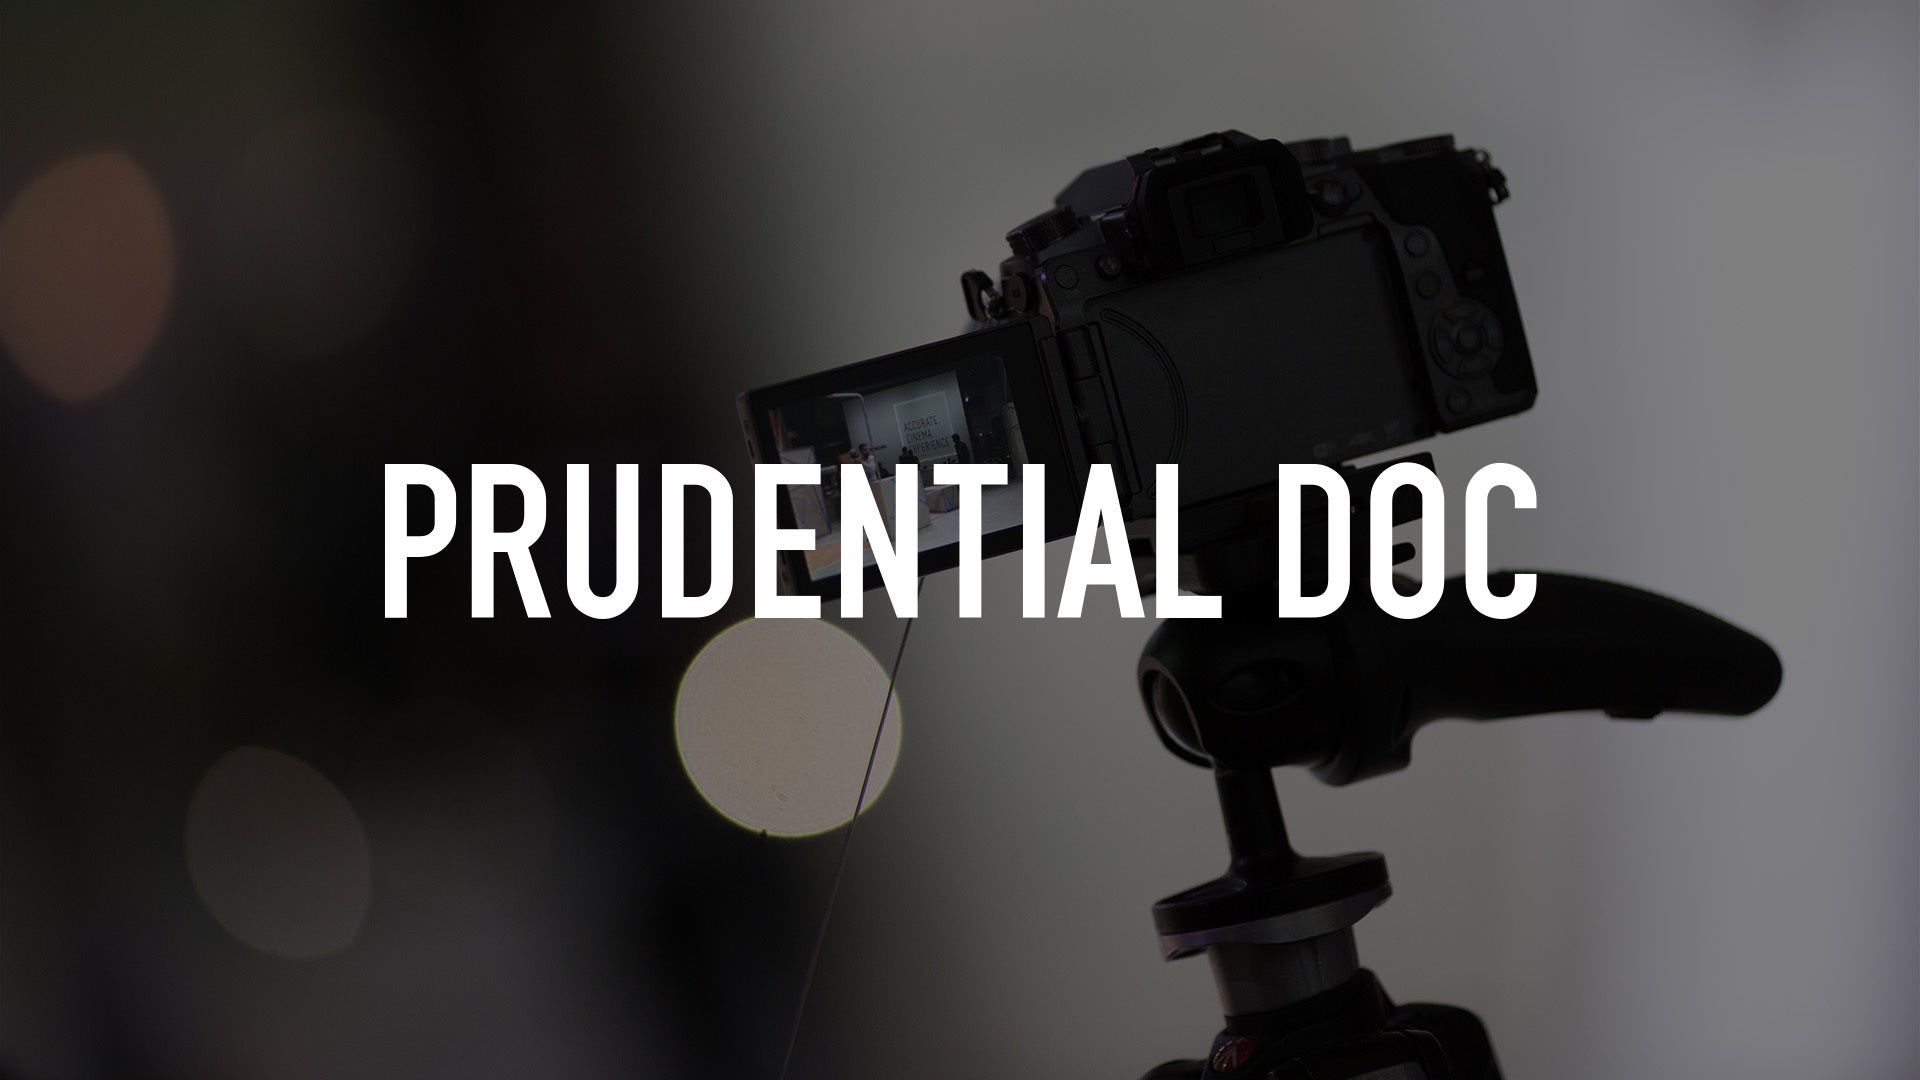 Prudential Doc